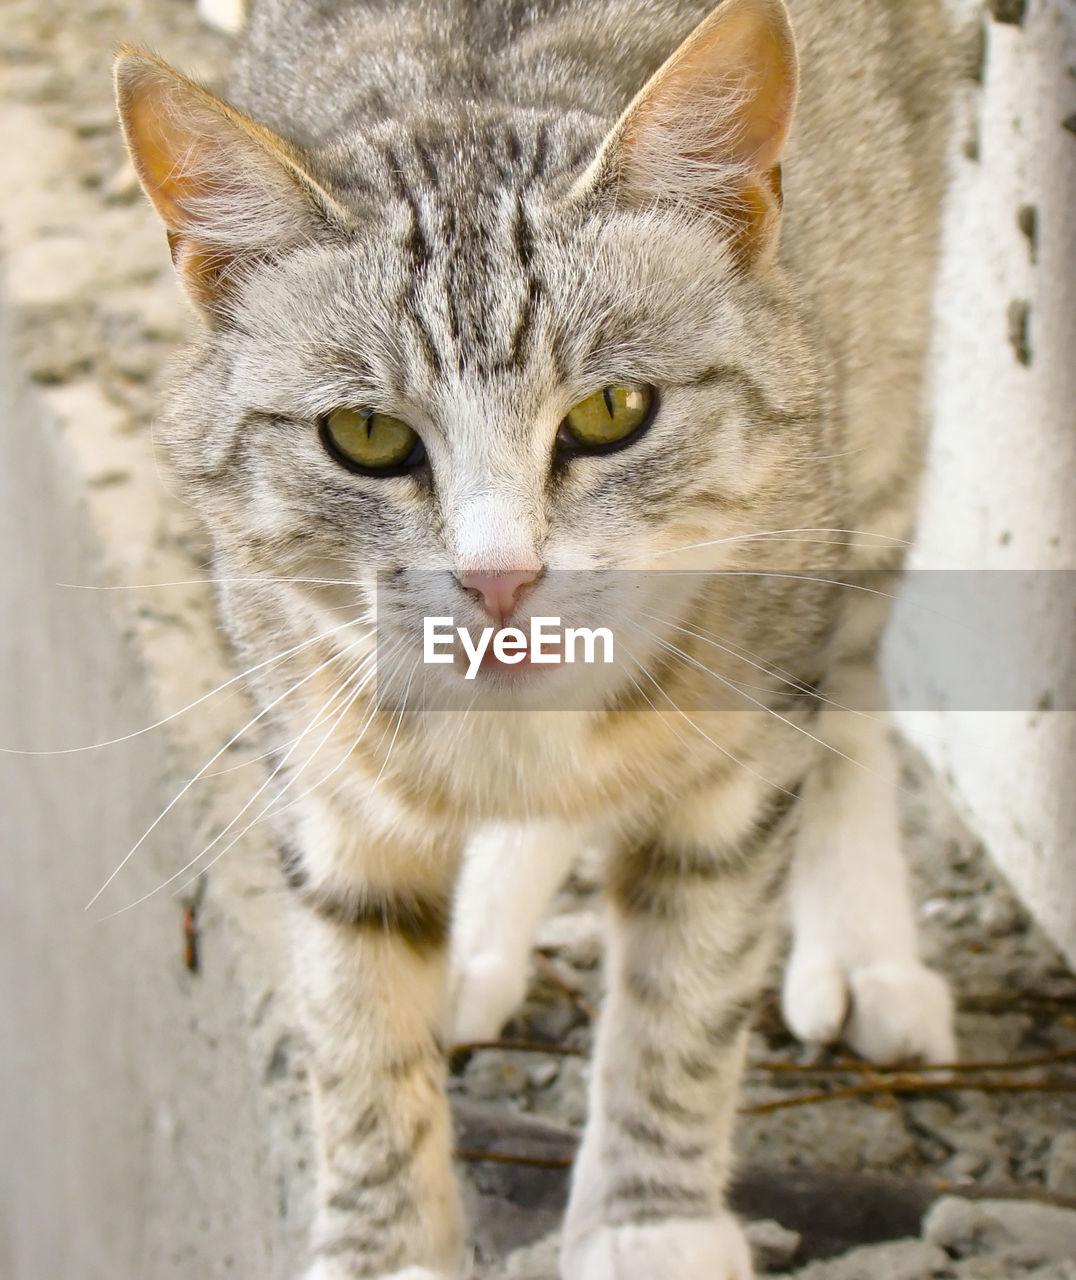 mammal, cat, pets, domestic, domestic animals, feline, one animal, domestic cat, portrait, vertebrate, looking at camera, whisker, no people, close-up, focus on foreground, day, animal body part, animal eye, tabby